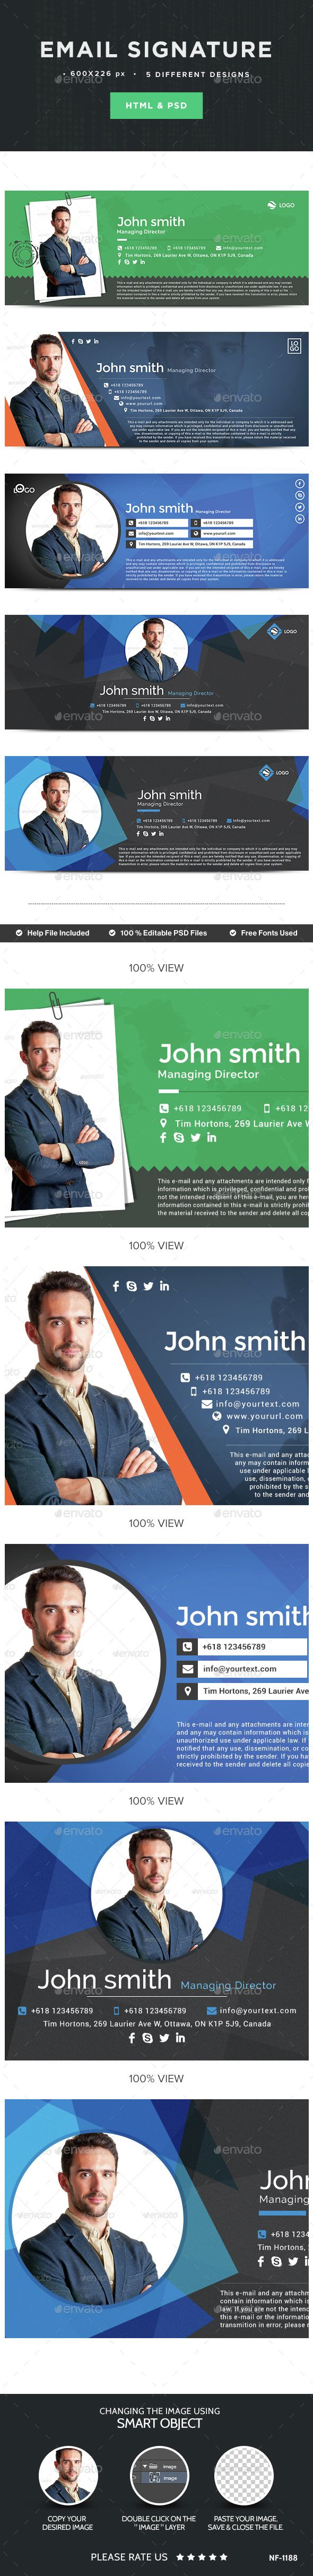 Email Signature - 5 Designs - HTML Files Included - Miscellaneous Social Media